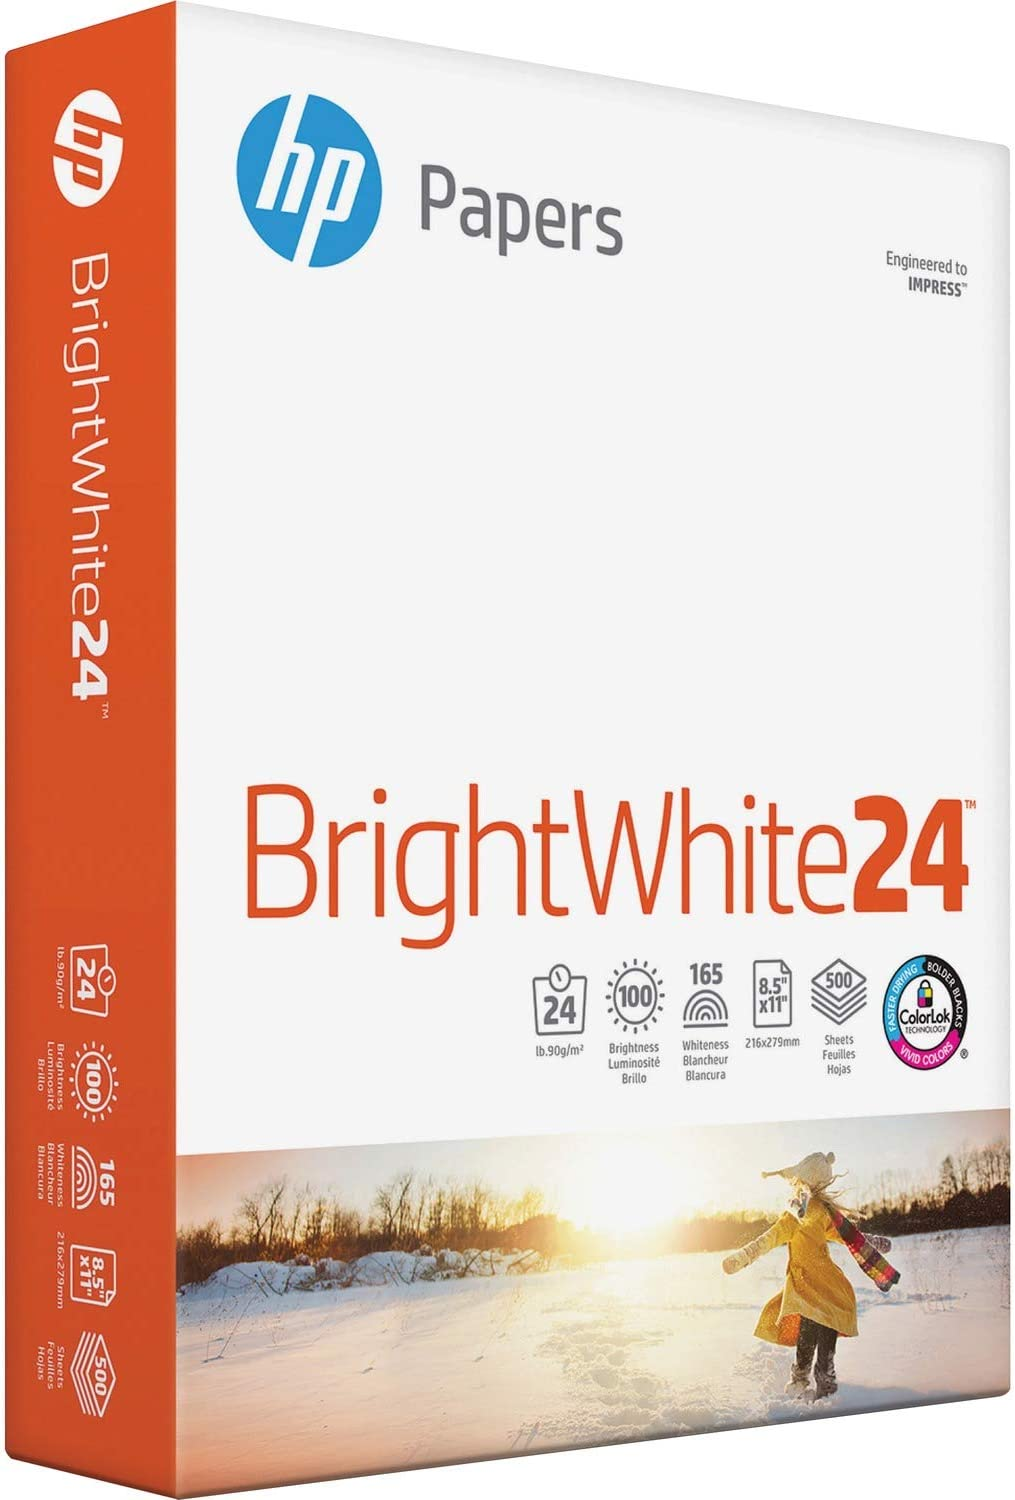 HP 203000 Bright White Inkjet Paper, 97 Brightness, 24lb, 8-1/2 x 11, 500 Sheets/Ream